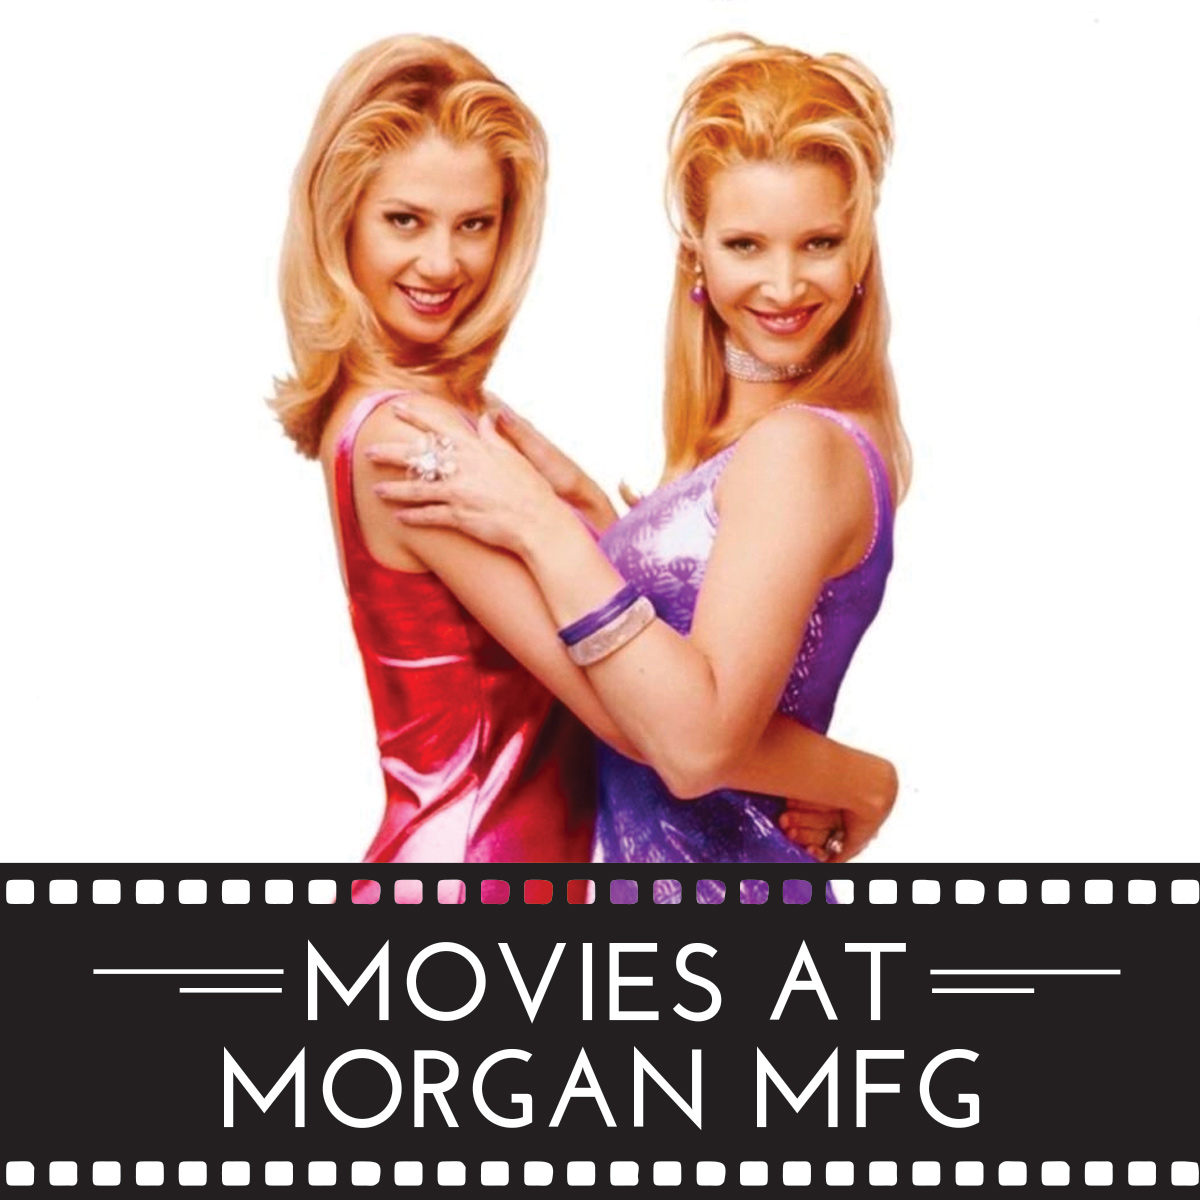 Movies at Morgan MFG – Romy and Michele's High School Reunion